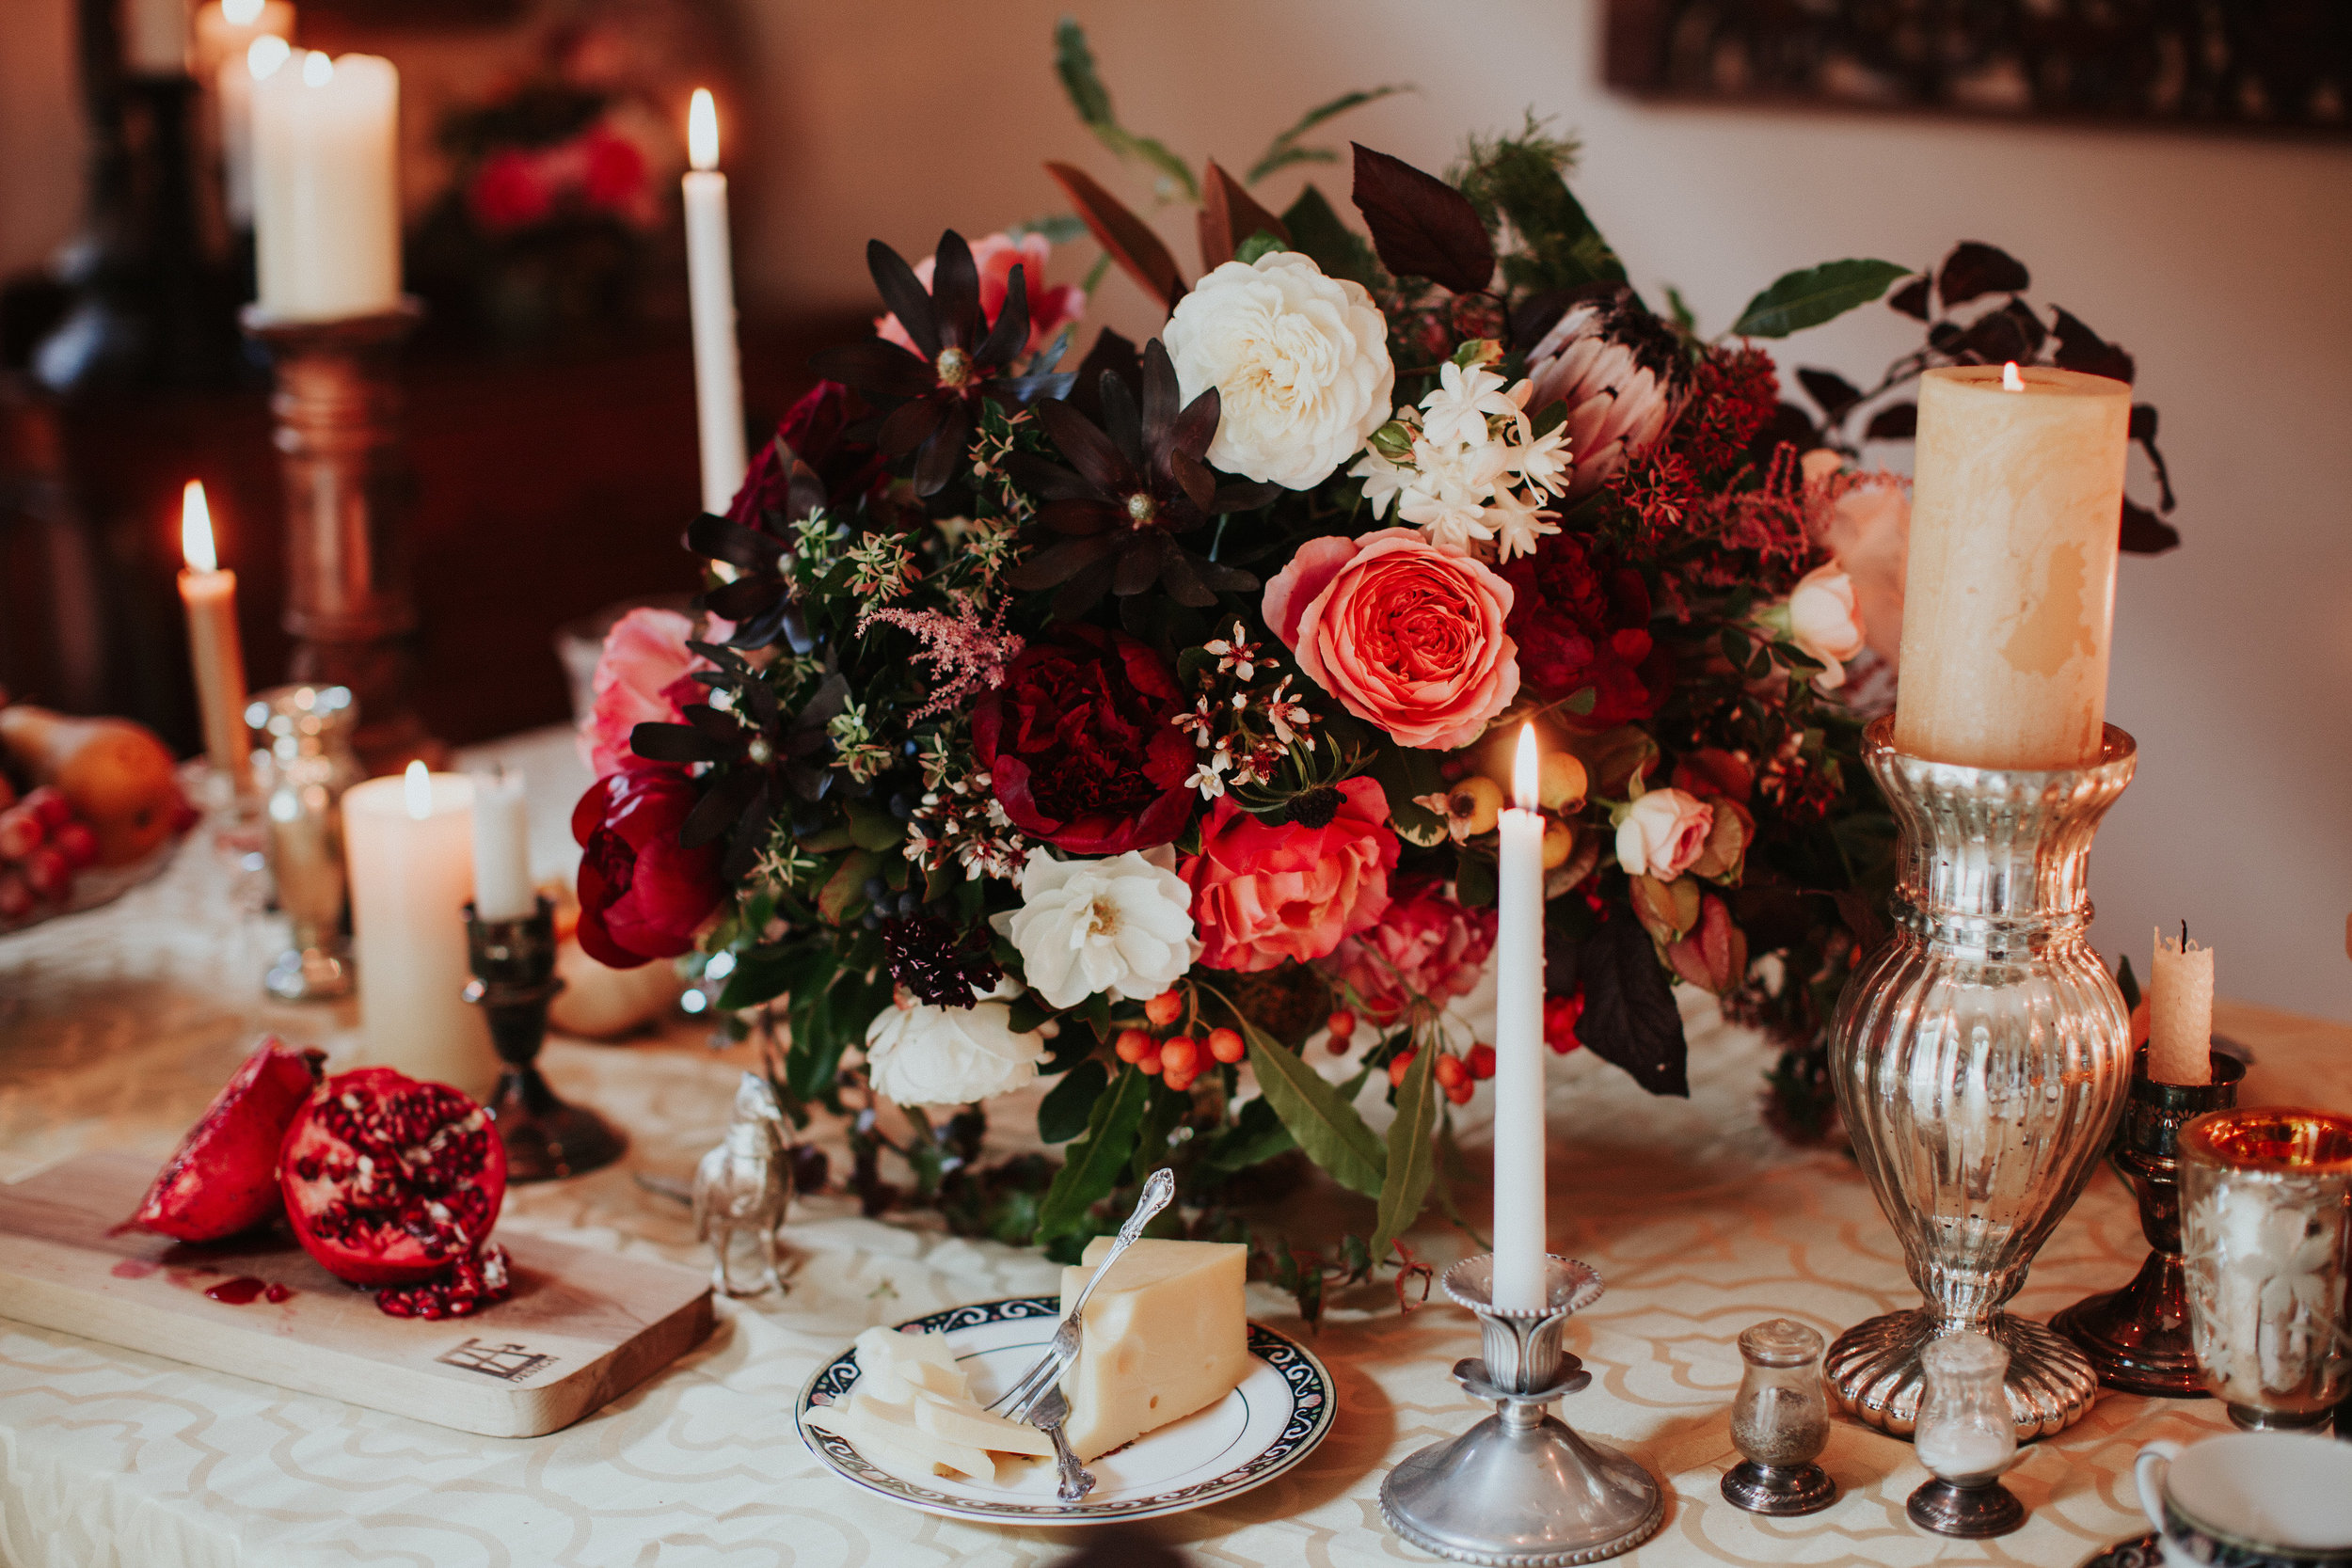 Large Centerpiece with Protea, Garden Roses, Peonies, rose hips and foraged berries